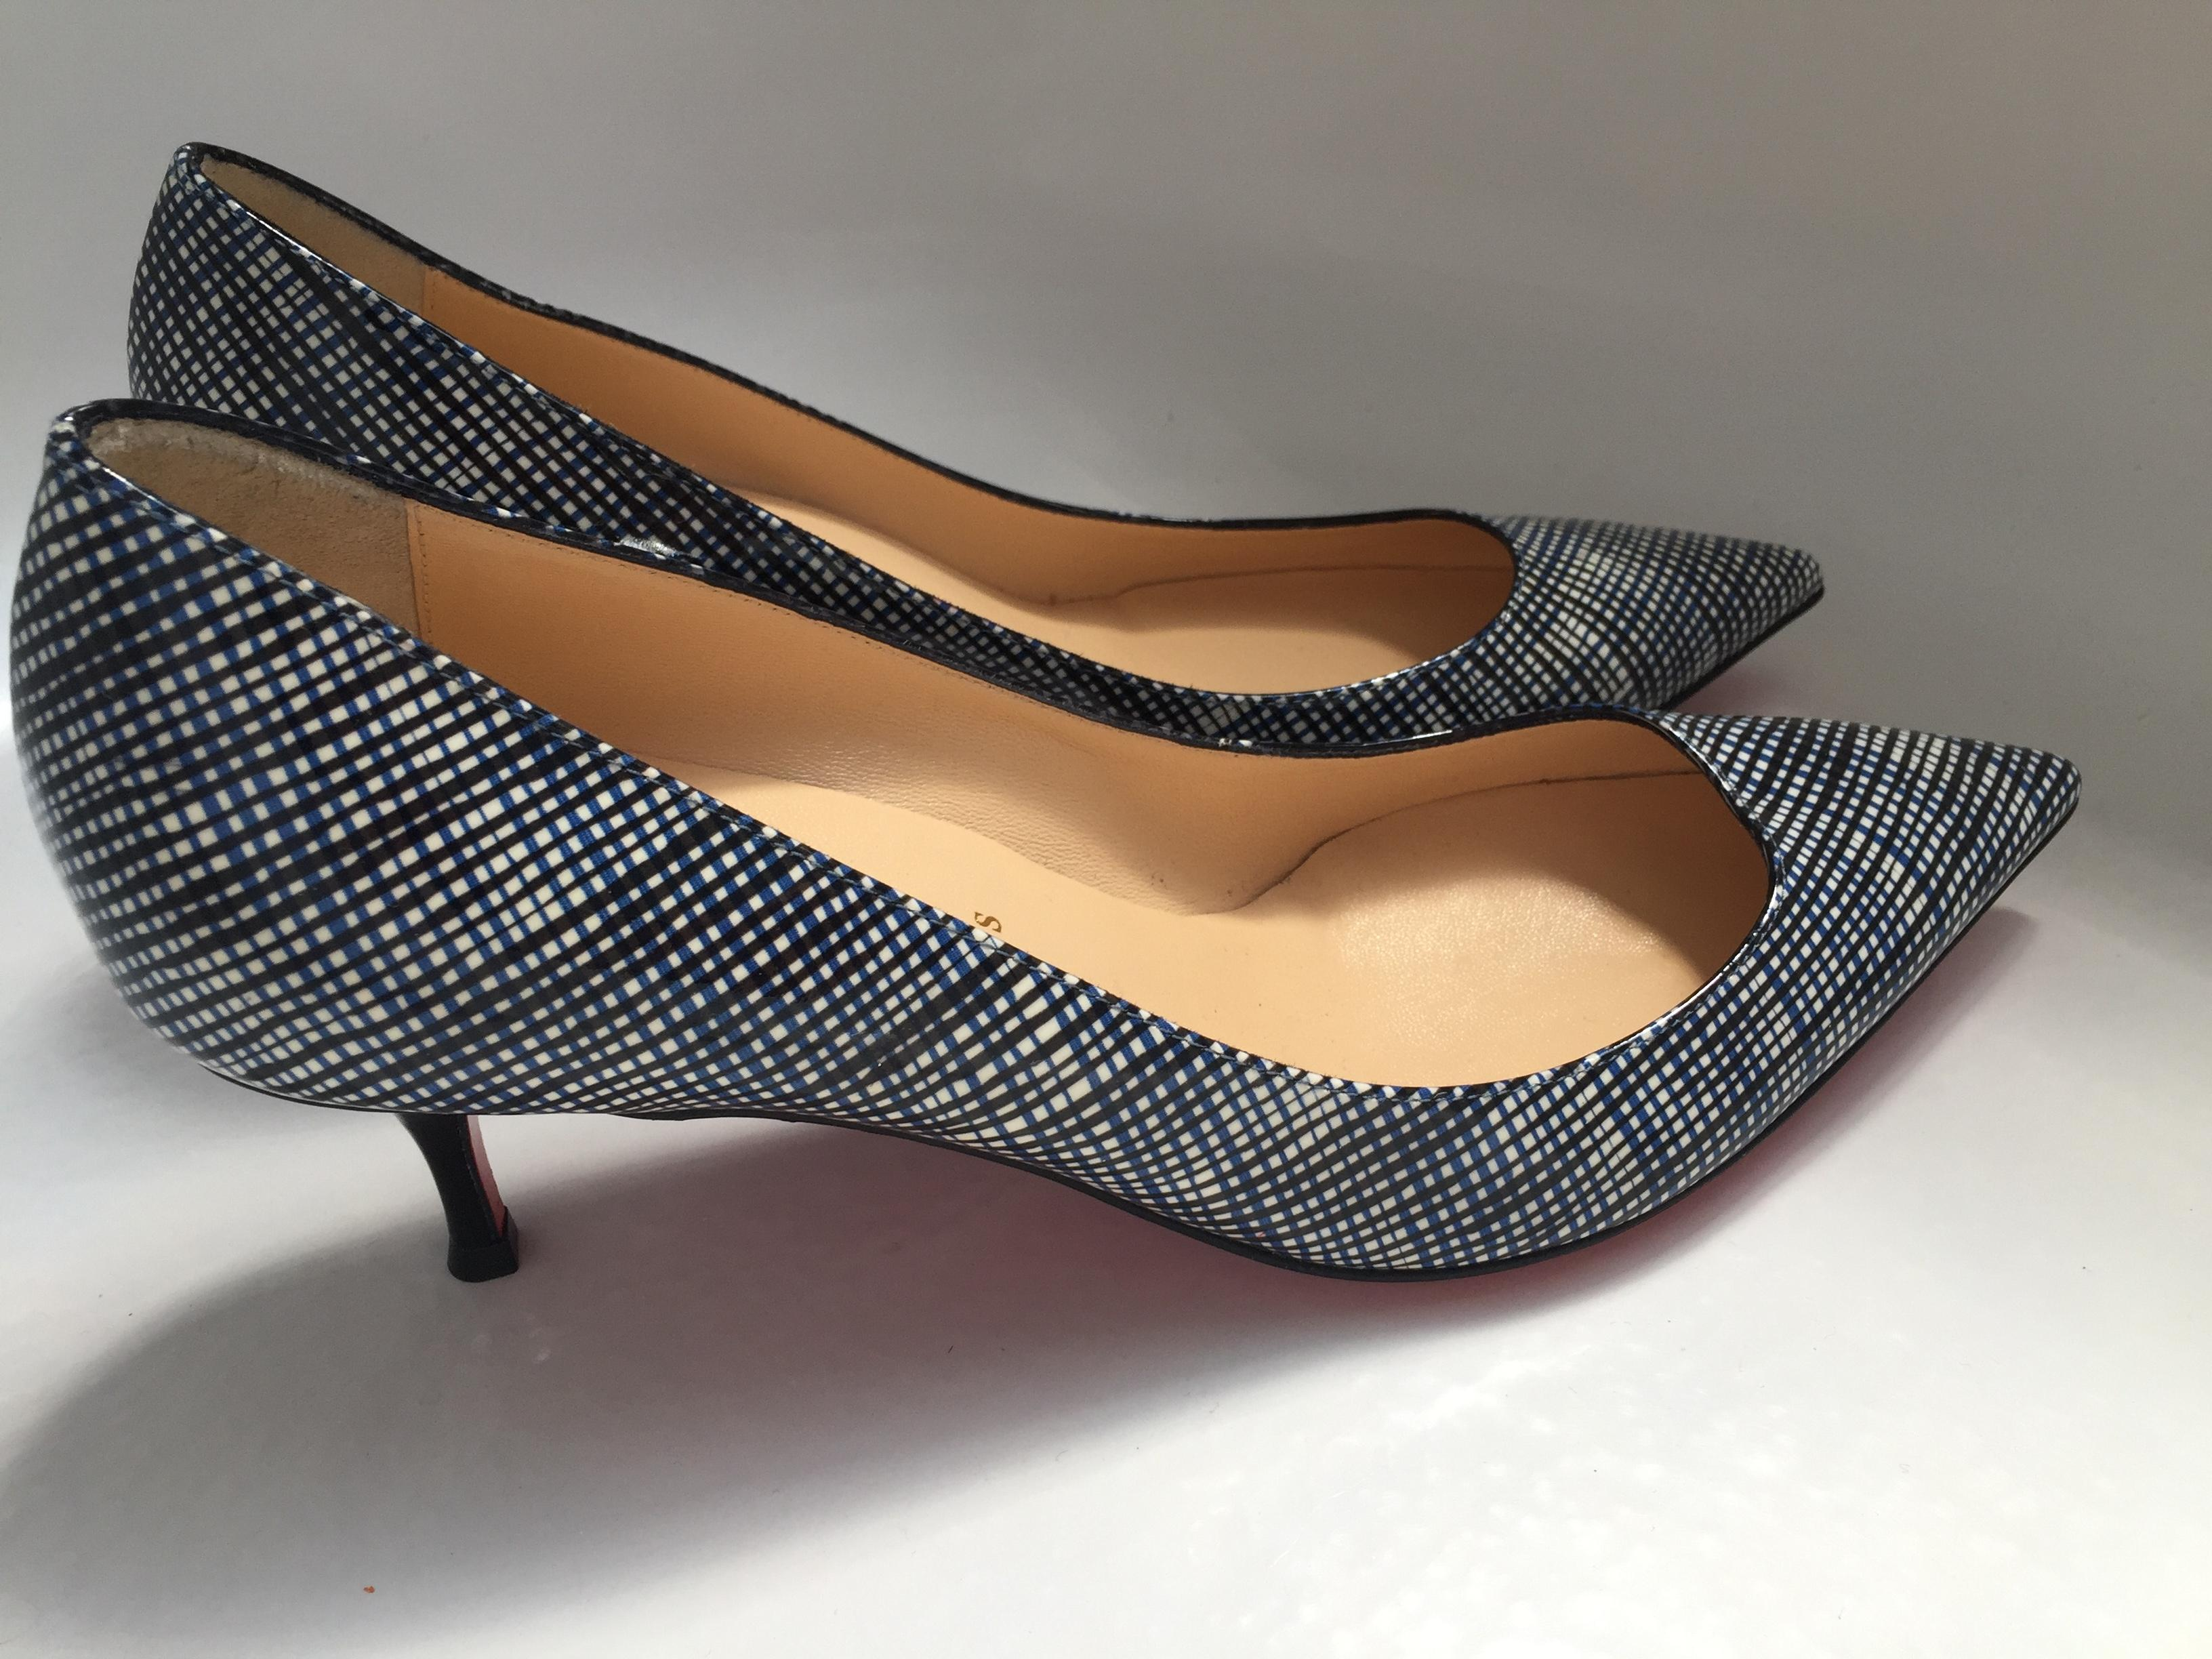 922fe9ca9f9 ... Christian Louboutin Navy Blue Black Pigalle Follies Pumps Pumps Pumps  Size EU 39 (Approx ...